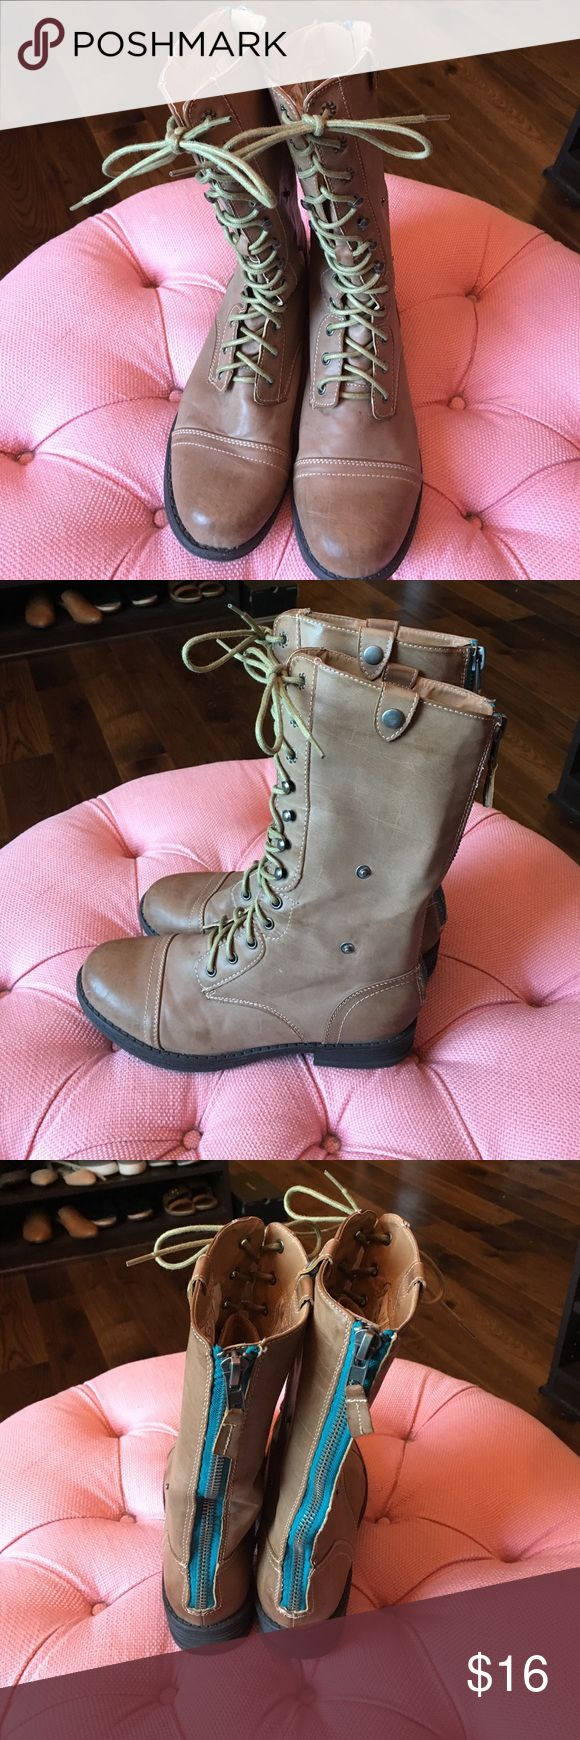 Tan Madden Girl Combat Boots Tan lace up combat boots with zipper detail in back. Very gently used. Love the edginess these add to any outfit. Madden Girl Shoes Combat & Moto Boots